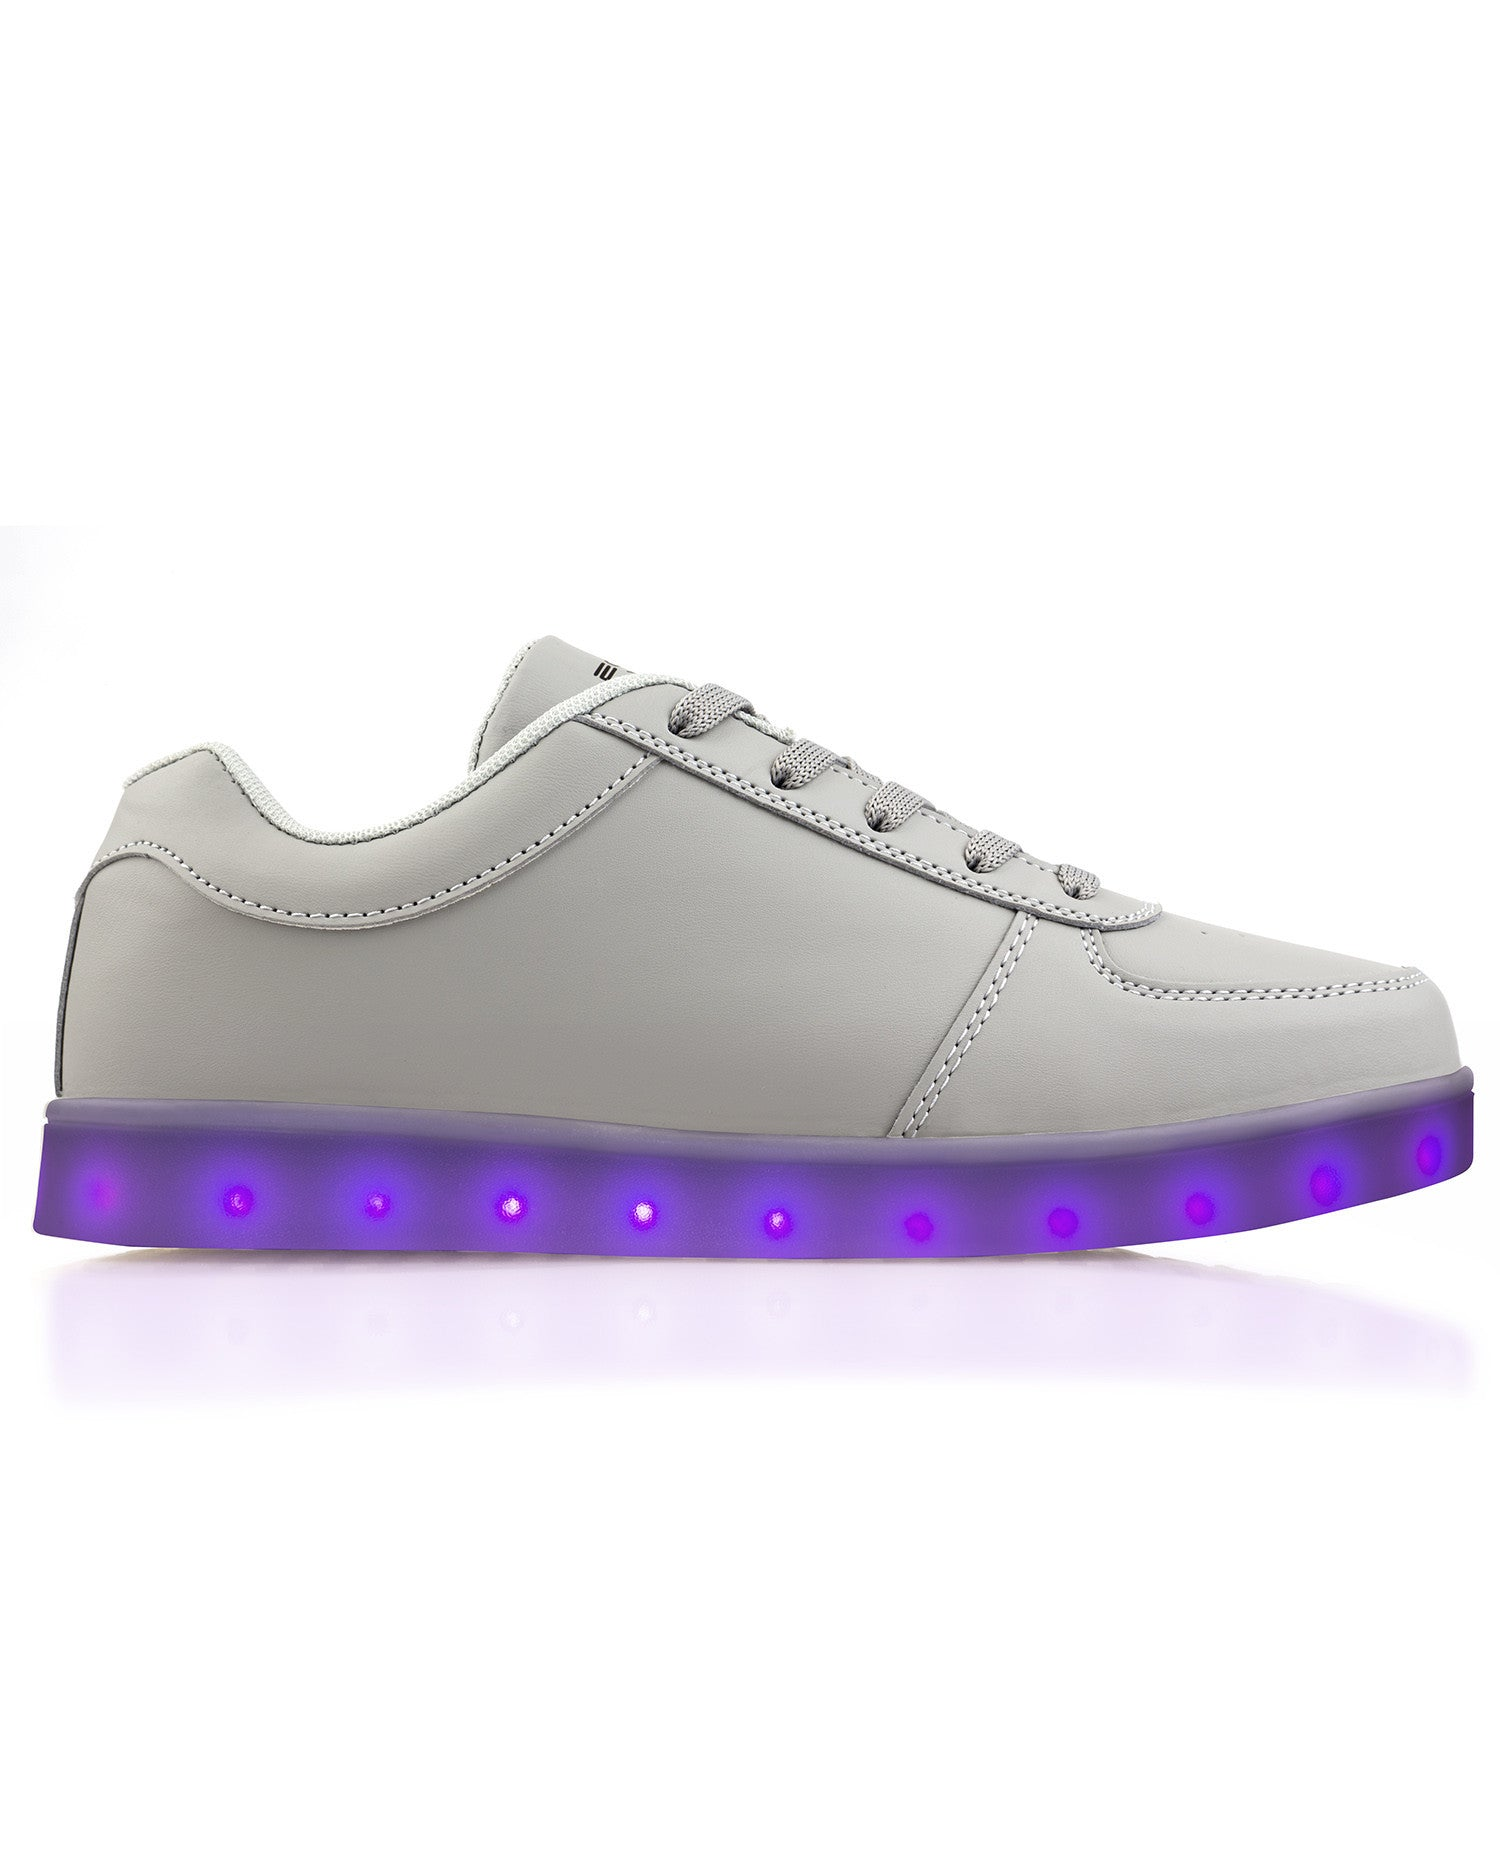 Electric Shoes - All Black - Electric Styles | World's Number 1 Light Up Shoe Store - {product_type}} - Grey / Men's 6 - 13